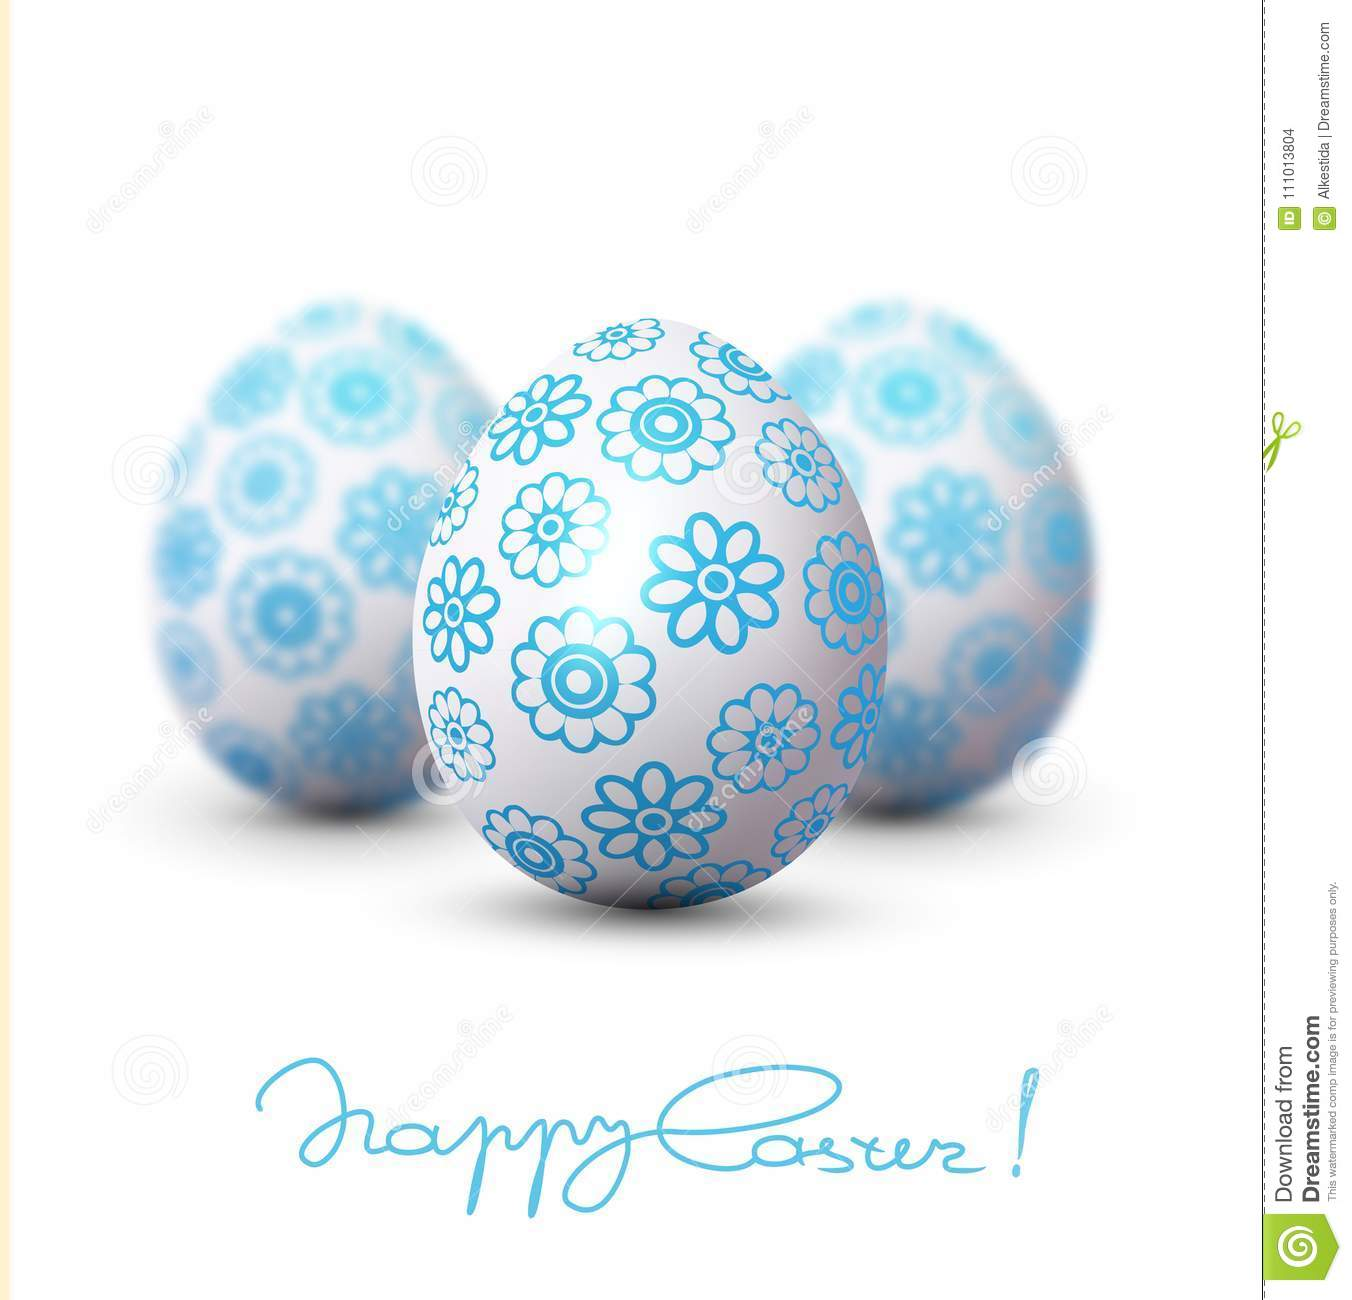 Easter Egg With A Blue Pattern On The Background Of Two Blurred Eggs Design Element Template Wallpaper Flyers Invitation Brochure Greeting Card